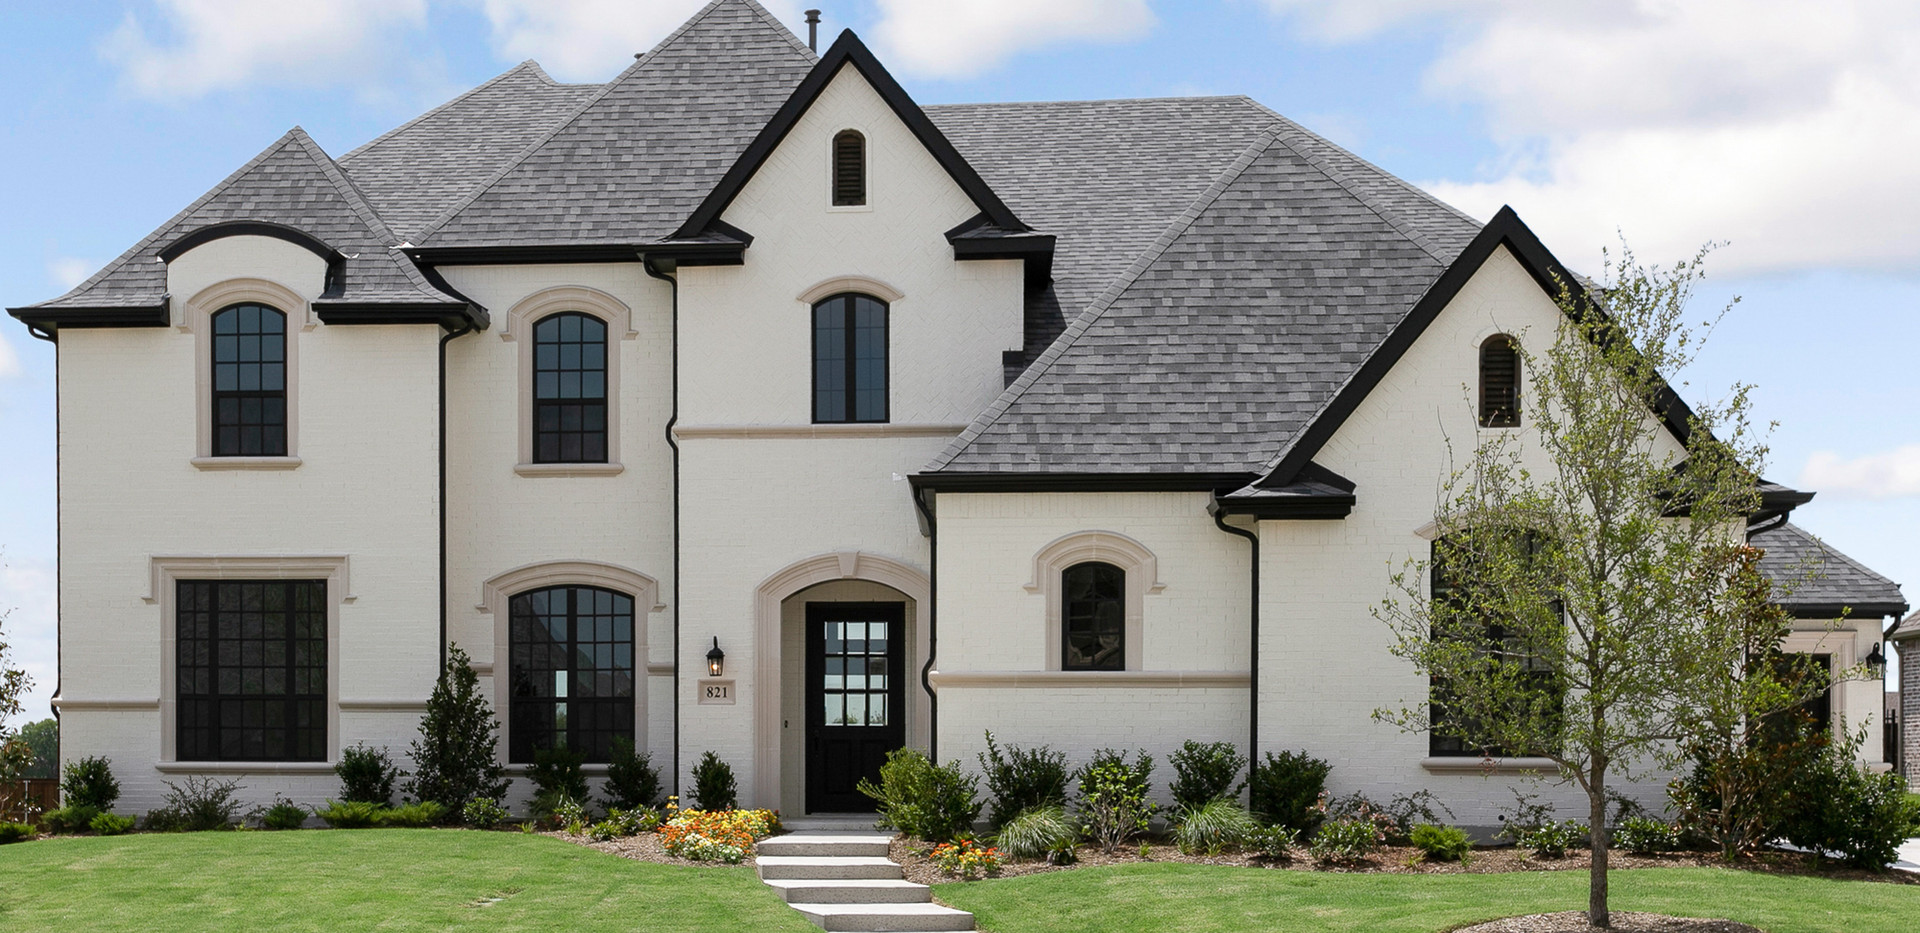 821 Hawk Wood Lane, Prosper